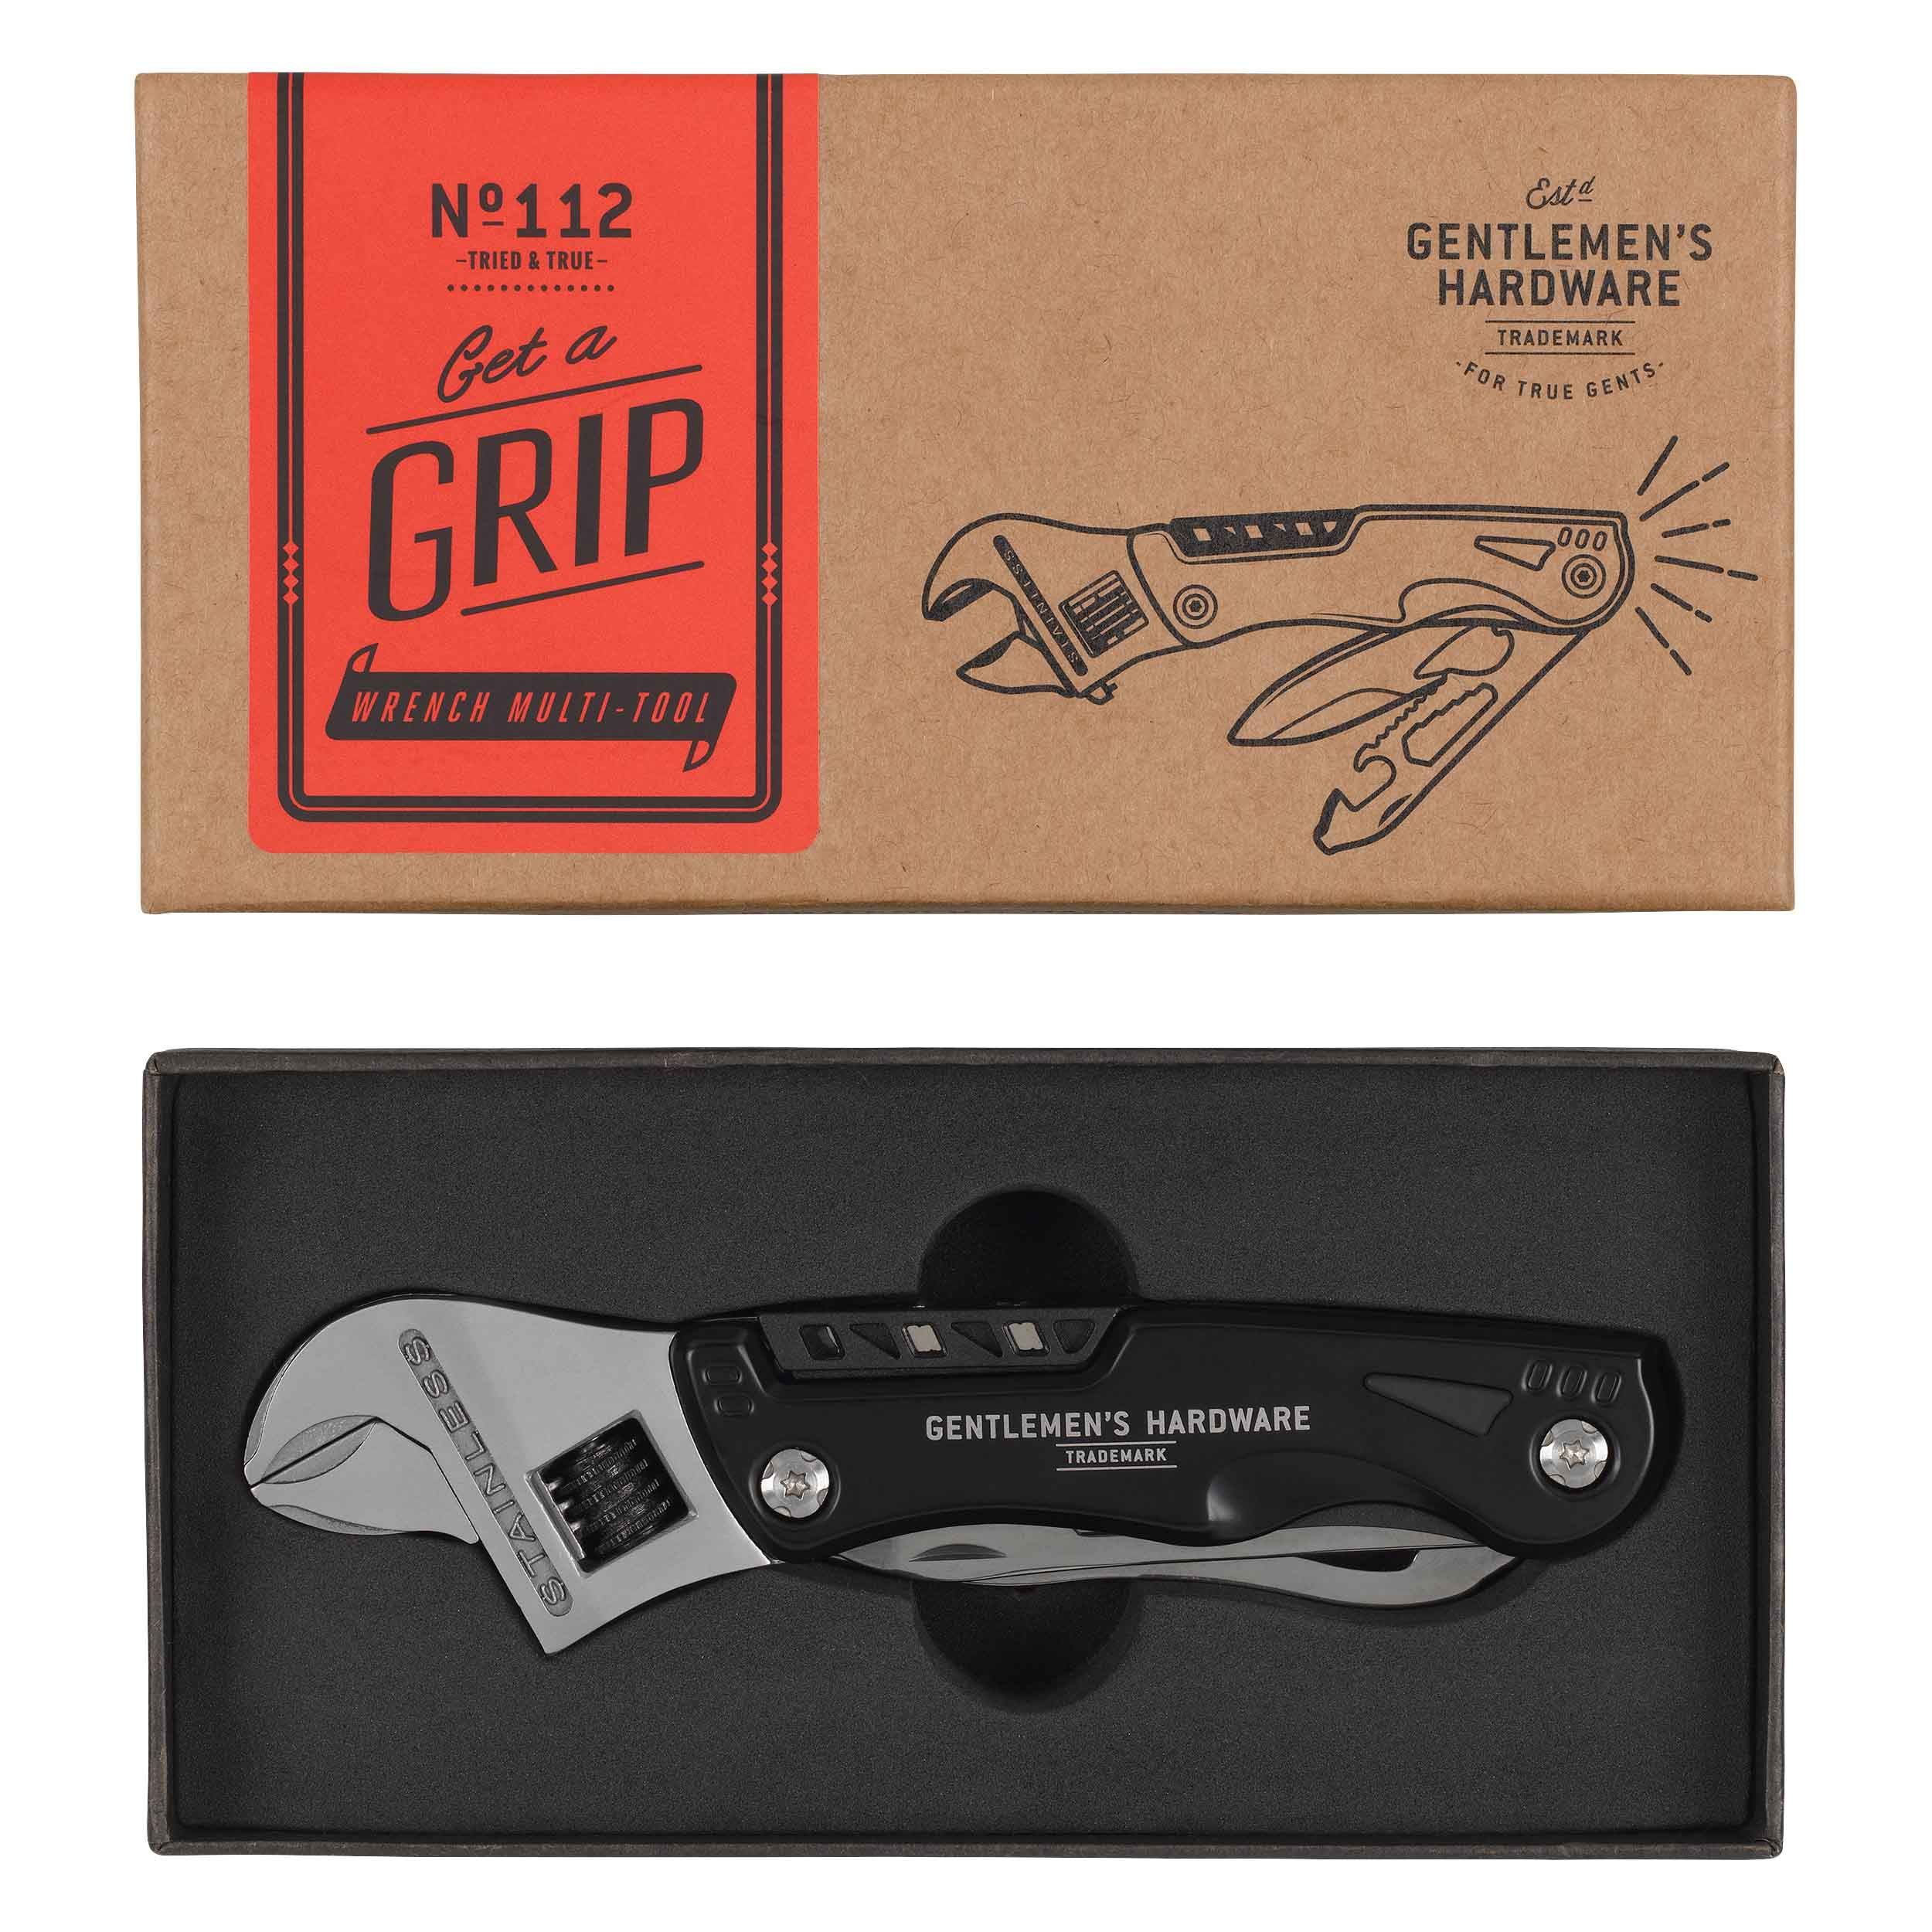 Wrench Multi-Tool with Torch